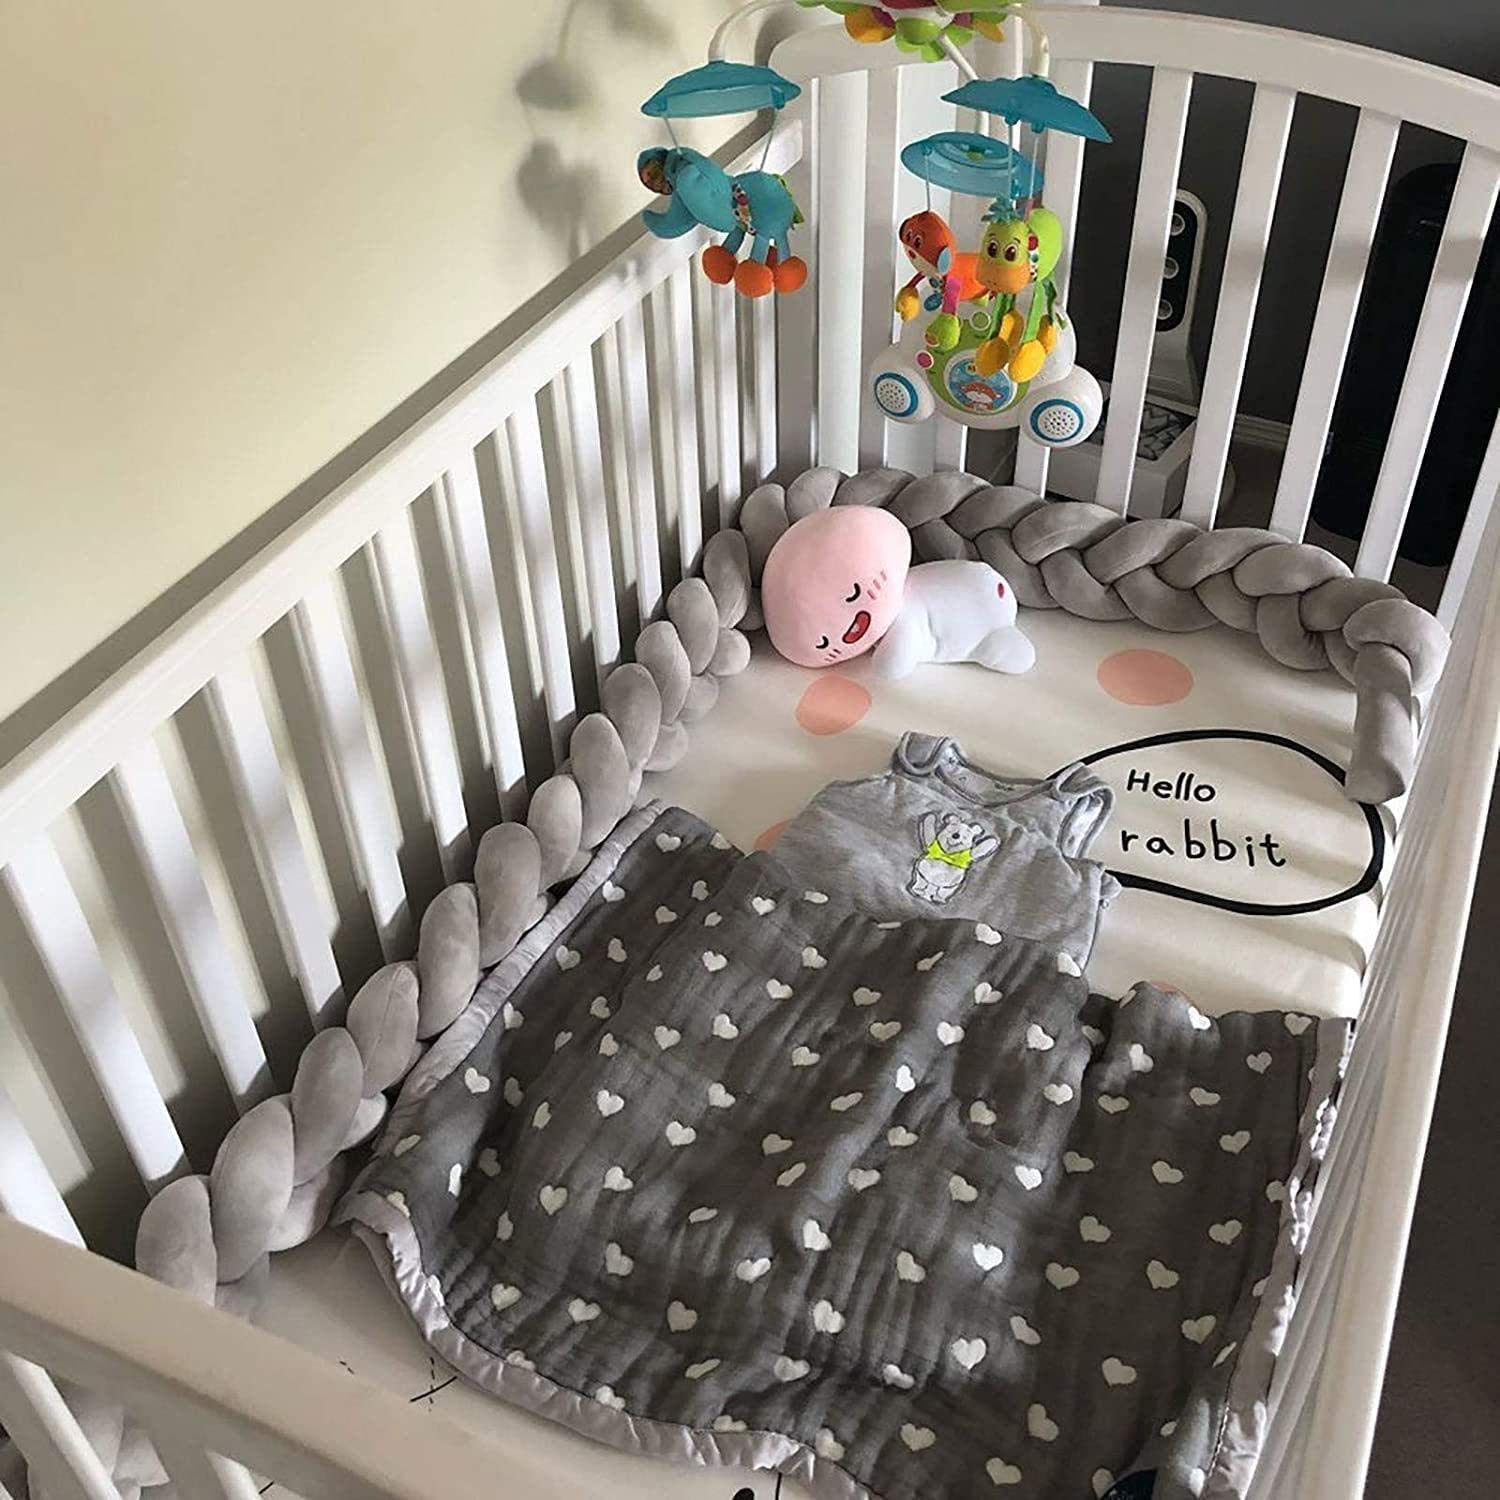 RedSuns Baby Crib Bumper 4 Weave Bumper Pillow Cushion Infant Bedside Protector Newborn Gift Cradle Decor for Boys and Girls,